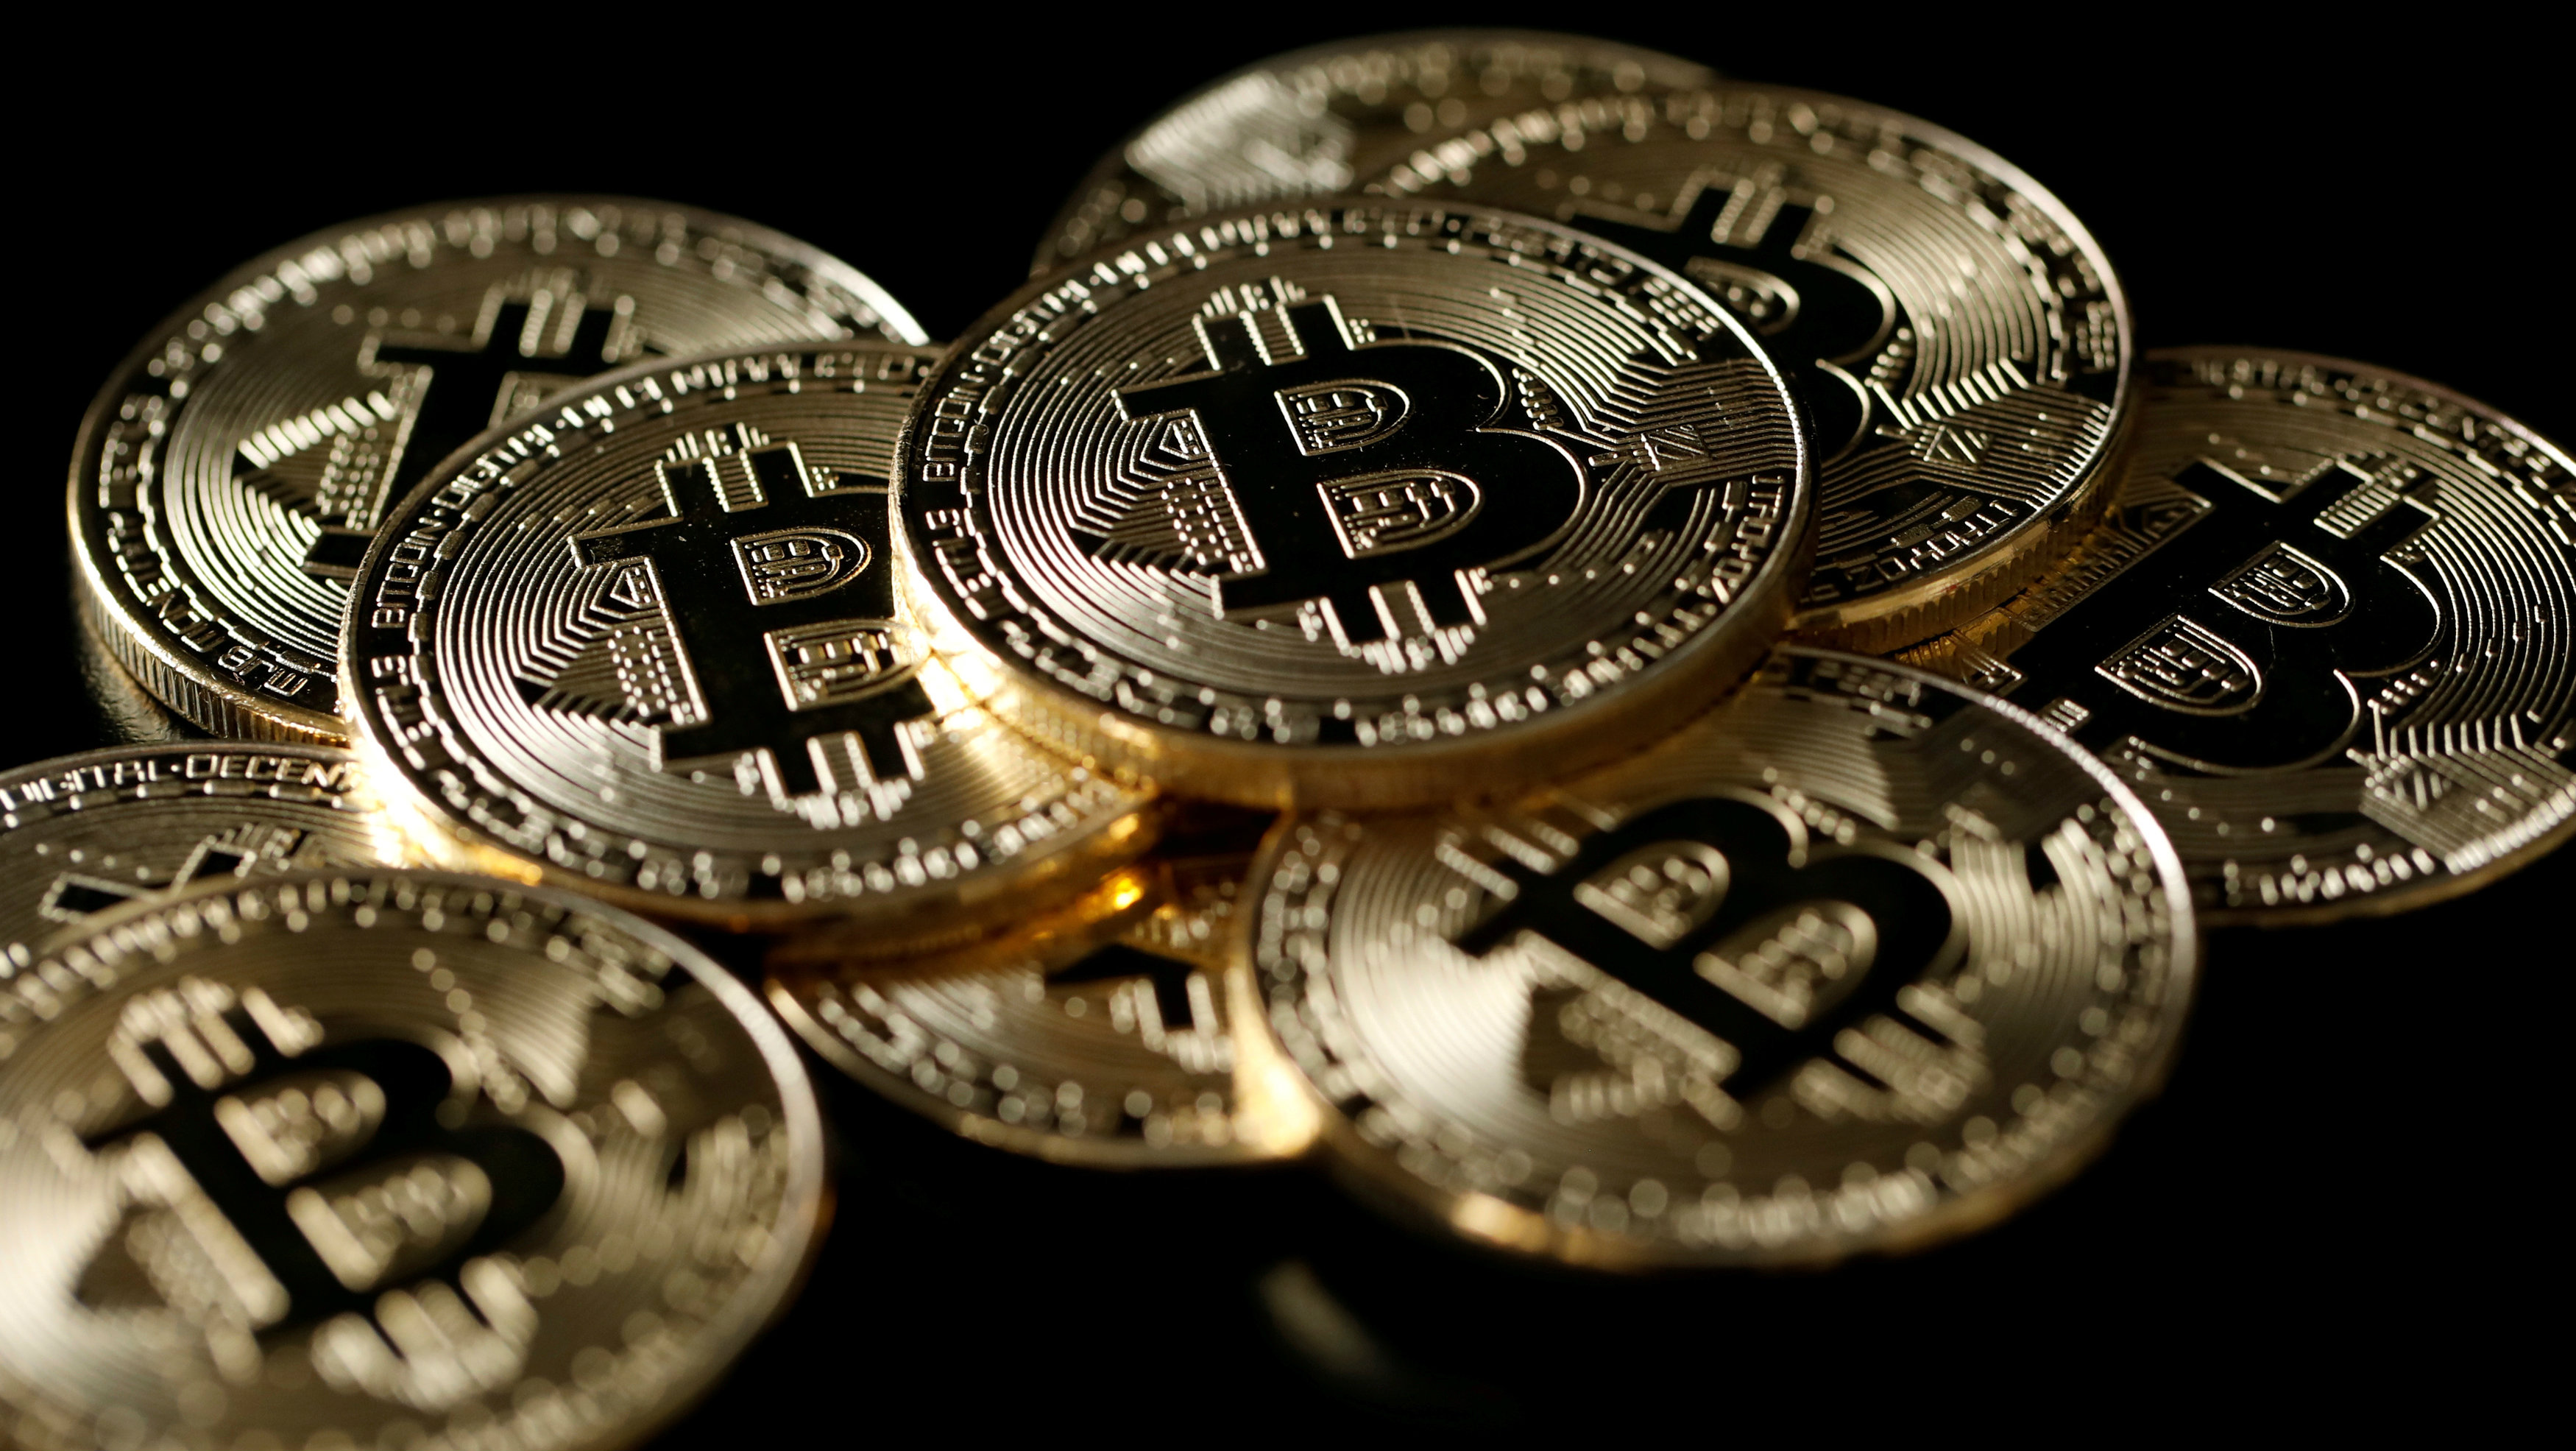 Famous legal brothel Bunny Ranch looking to accept bitcoin for payment for sexual services.